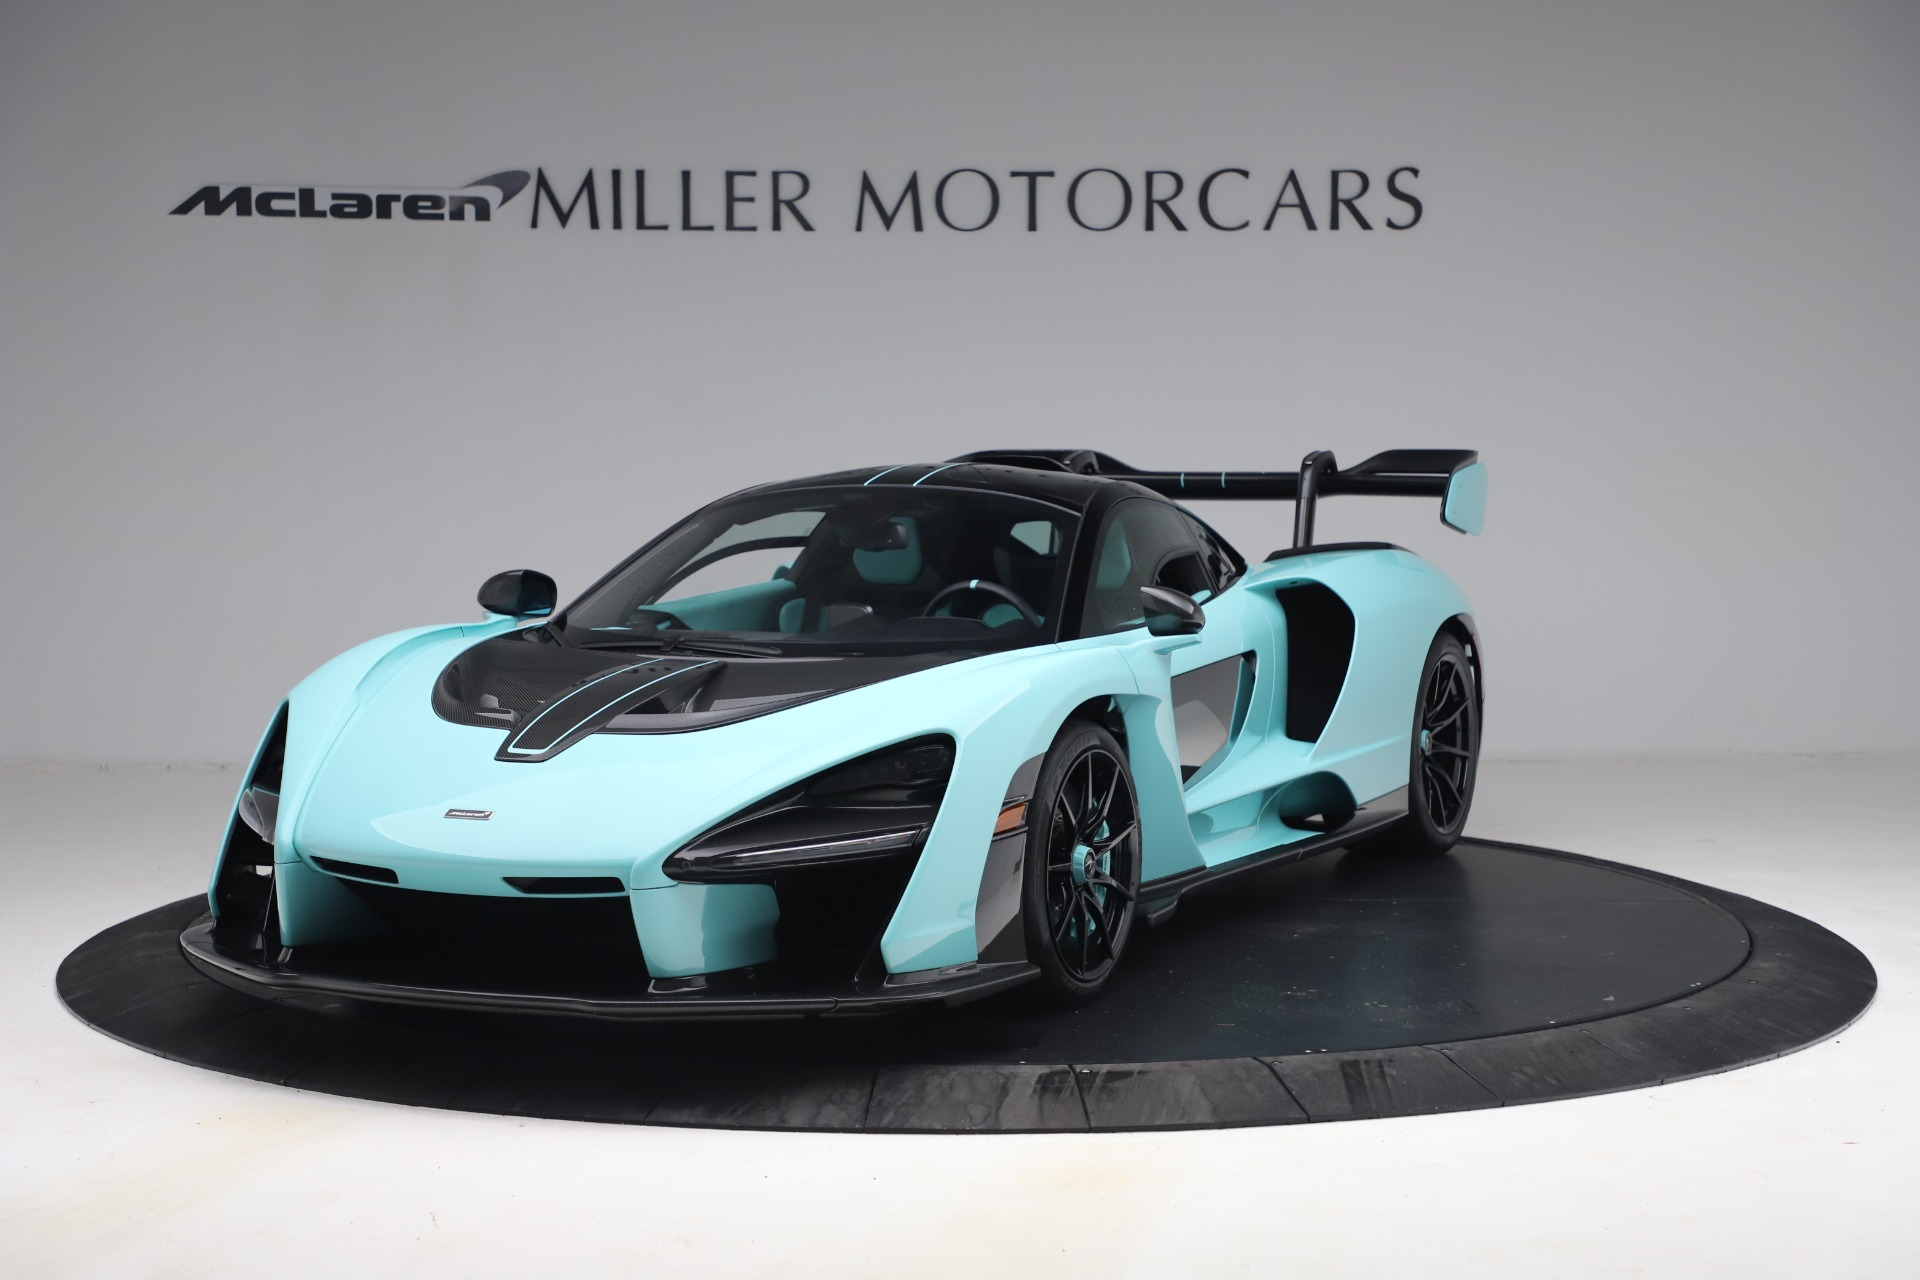 Used 2019 McLaren Senna for sale $1,269,000 at Rolls-Royce Motor Cars Greenwich in Greenwich CT 06830 1